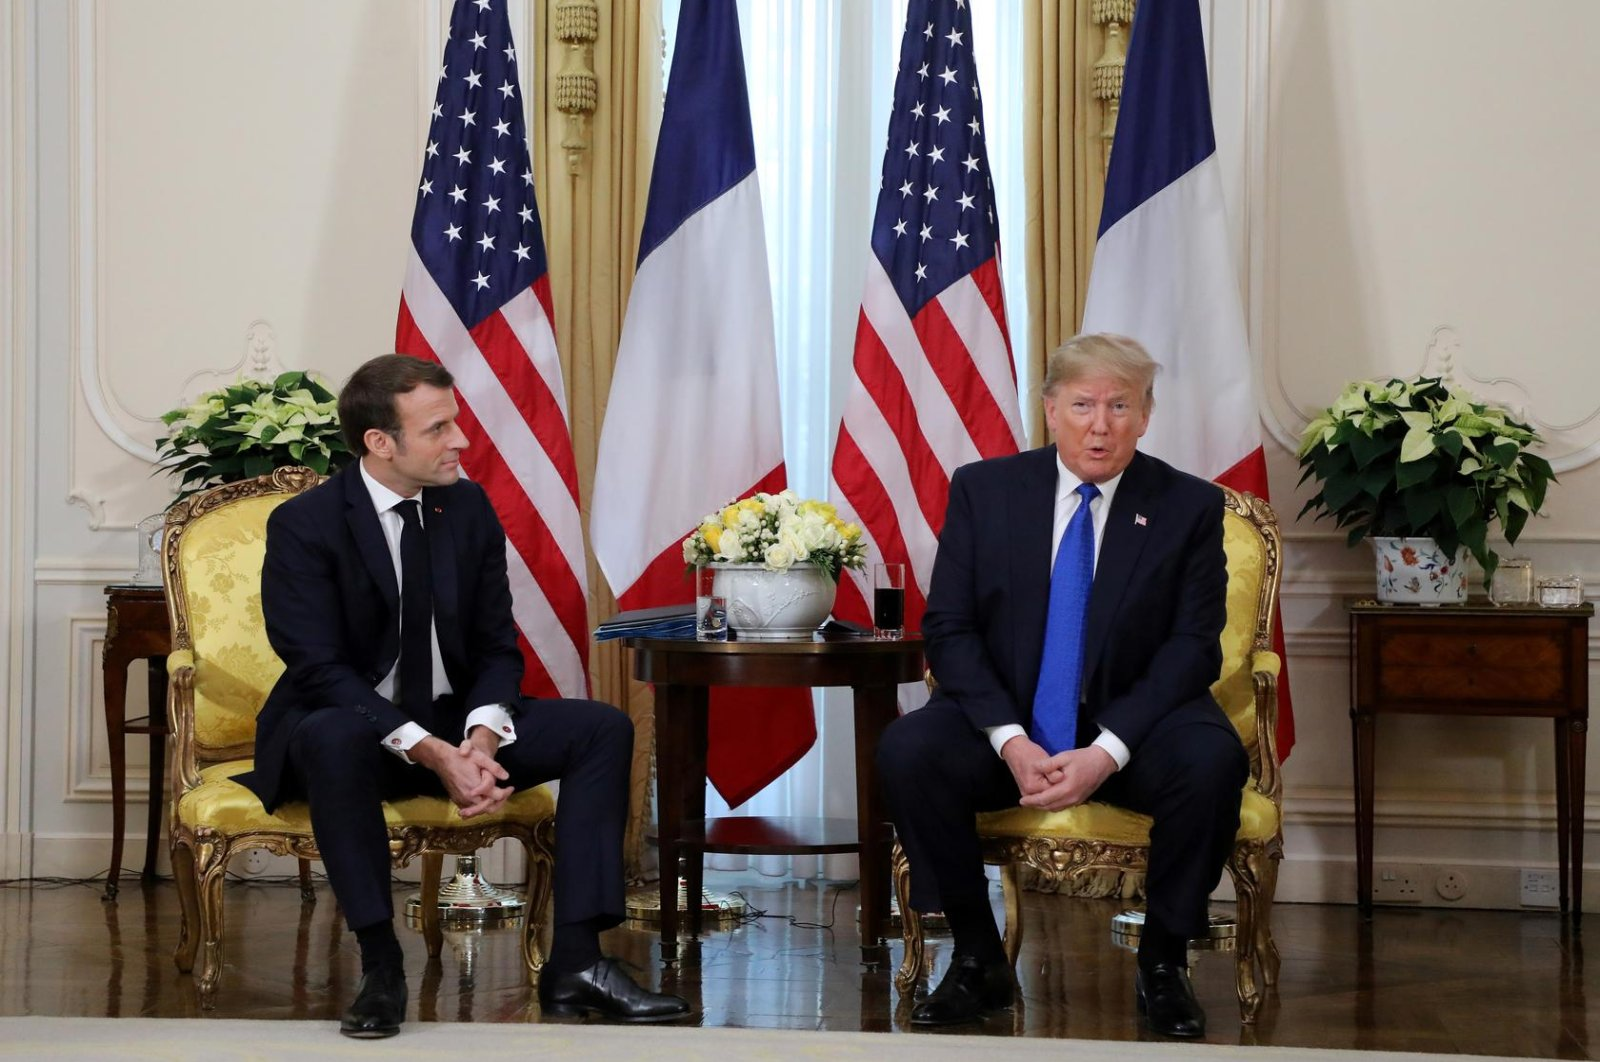 U.S. President Donald Trump meets with France's President Emmanuel Macron, ahead of the NATO summit, in Watford, in London, Britain, December 3, 2019. (Reuters Photo)